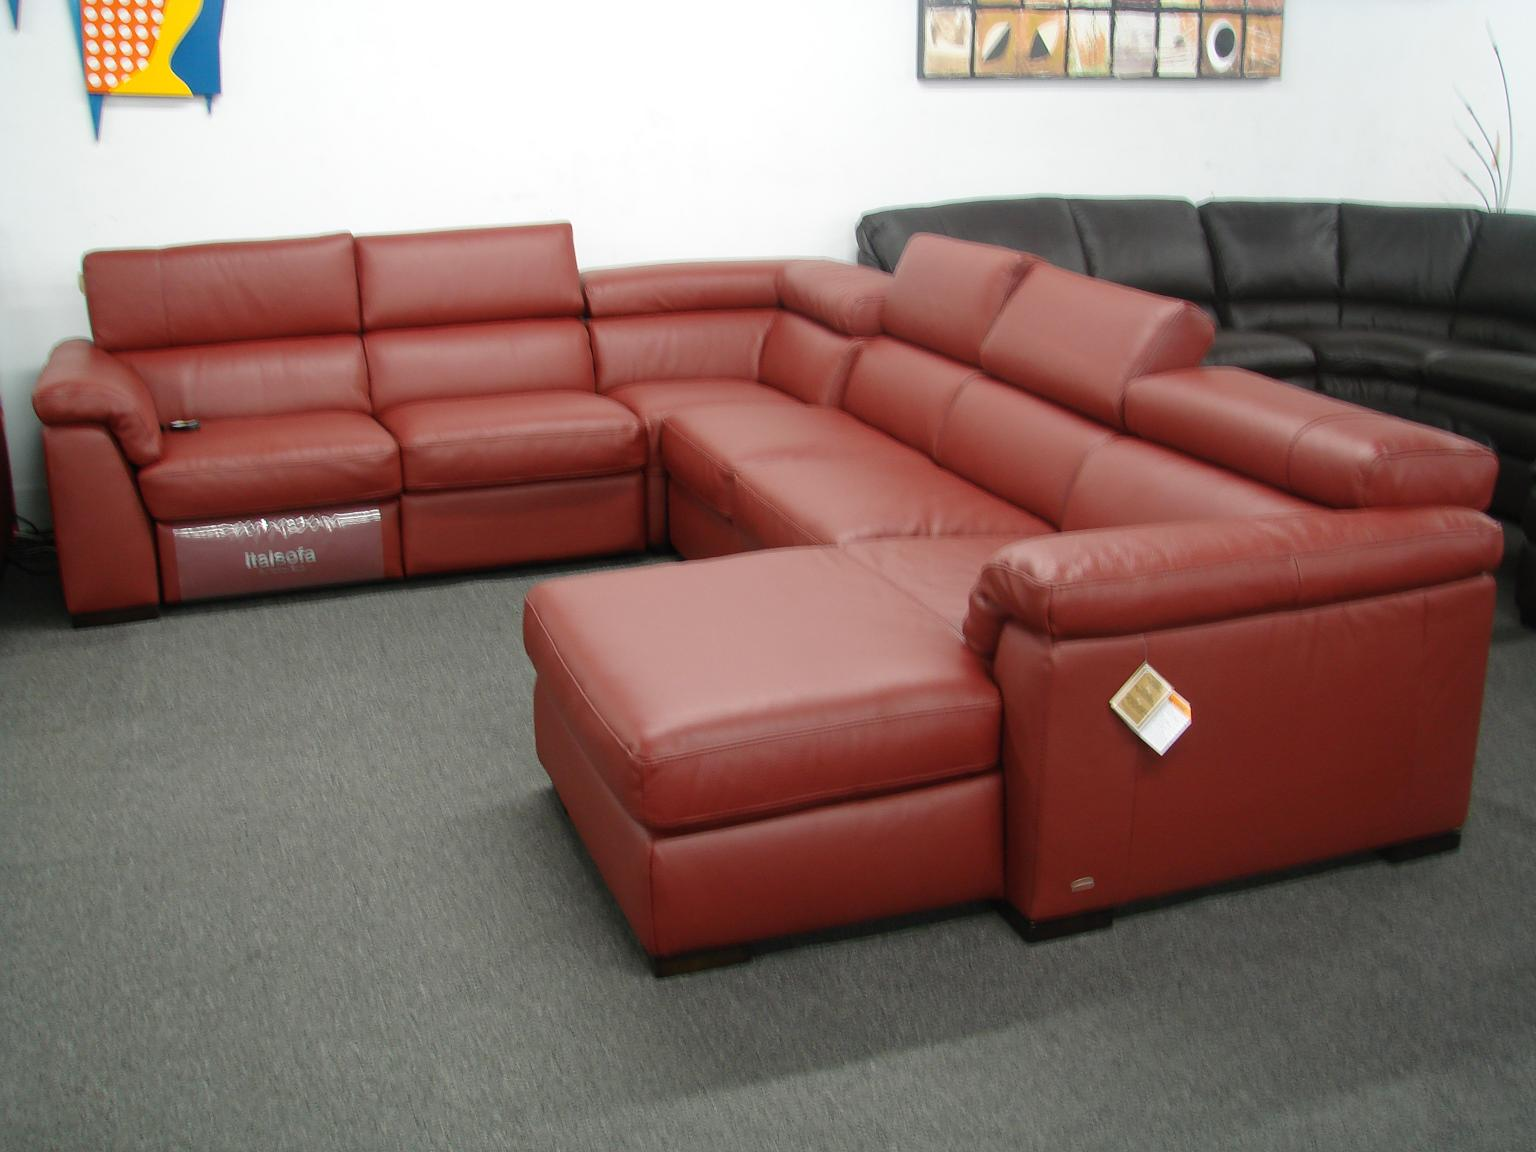 Natuzzi Leather Sectional | 1536 x 1152 · 137 kB · jpeg